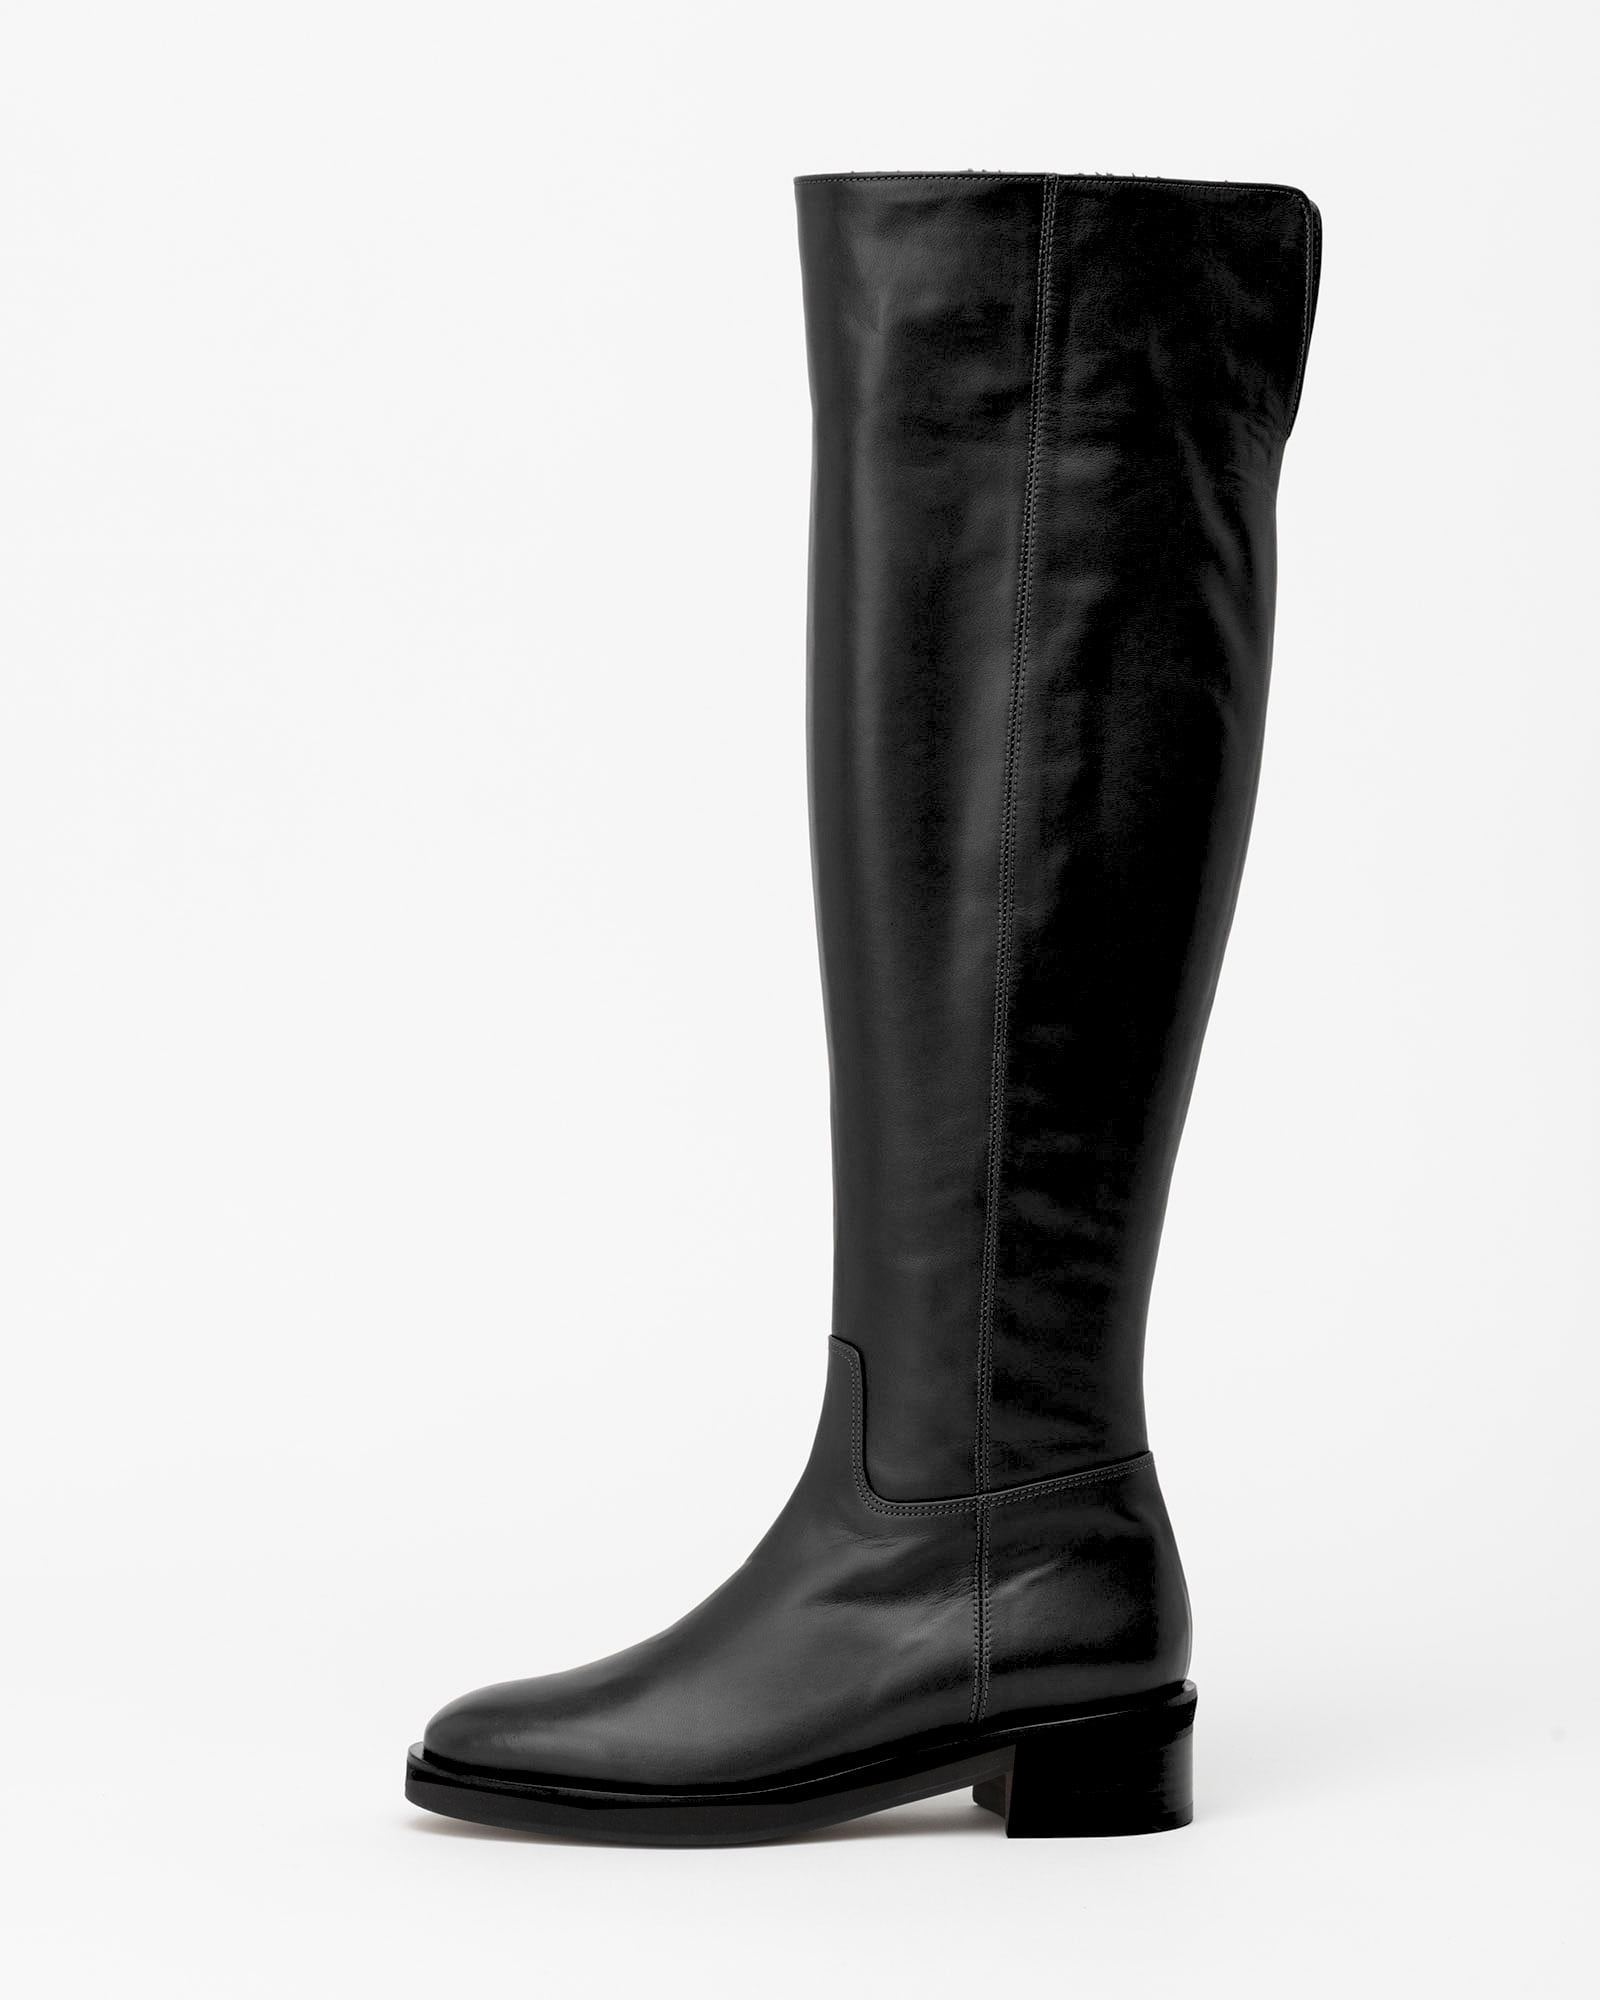 Lisee Wool Lining Boots in Black